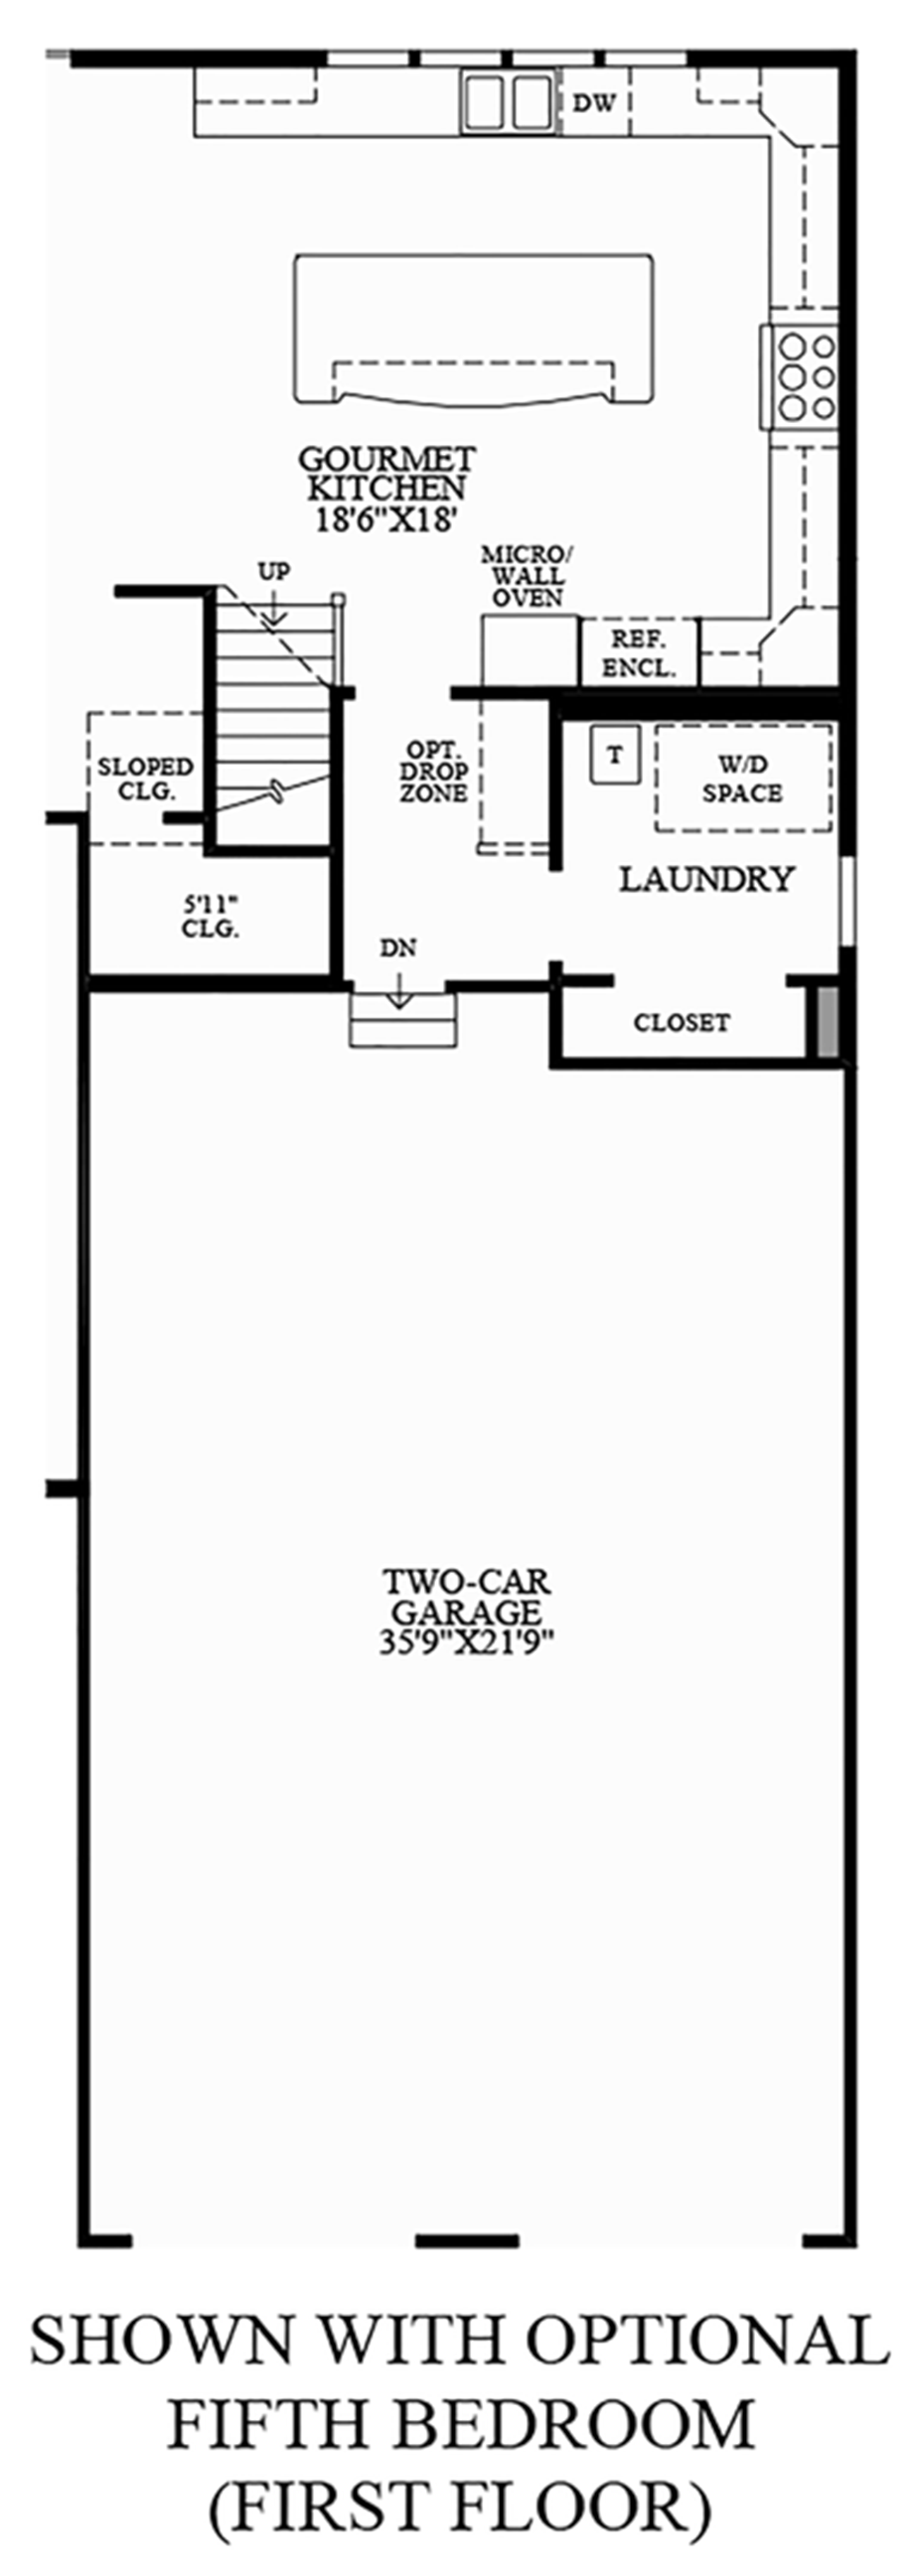 Optional Fifth Bedroom (First Floor) Floor Plan